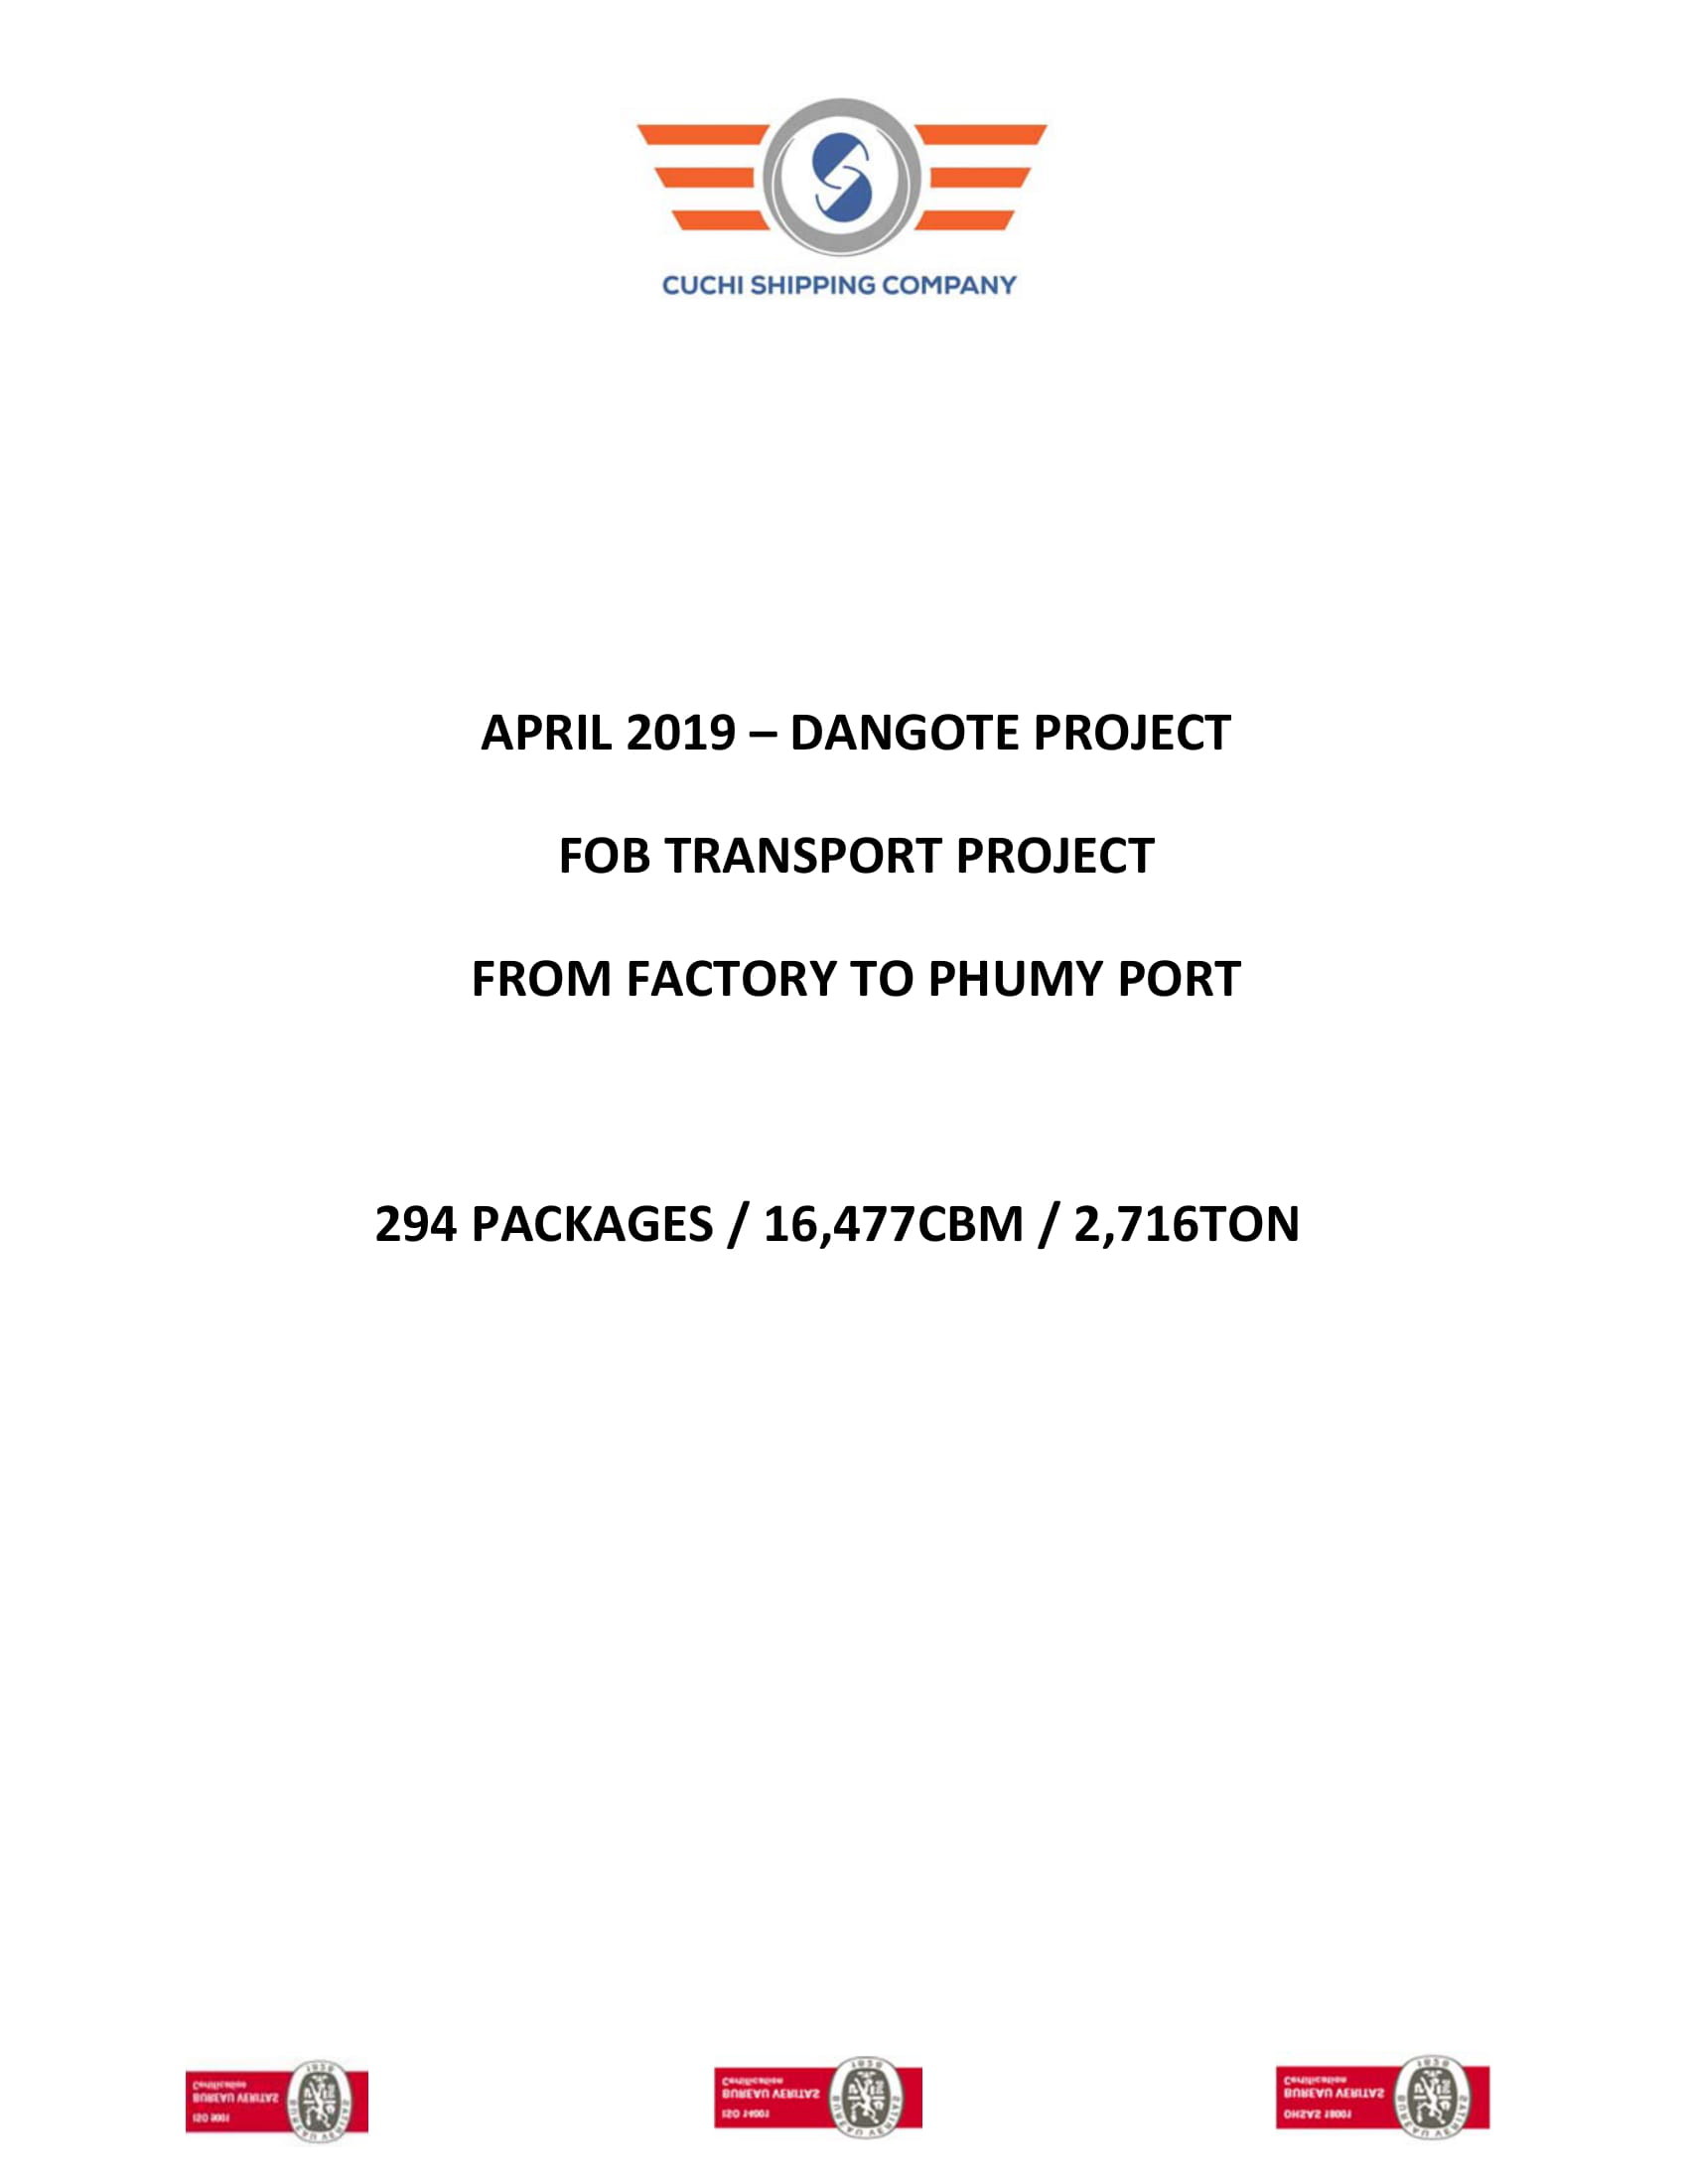 APRIL-2019-DANGOTE-PROJECT-FOB-TRANSPORT-1.jpg